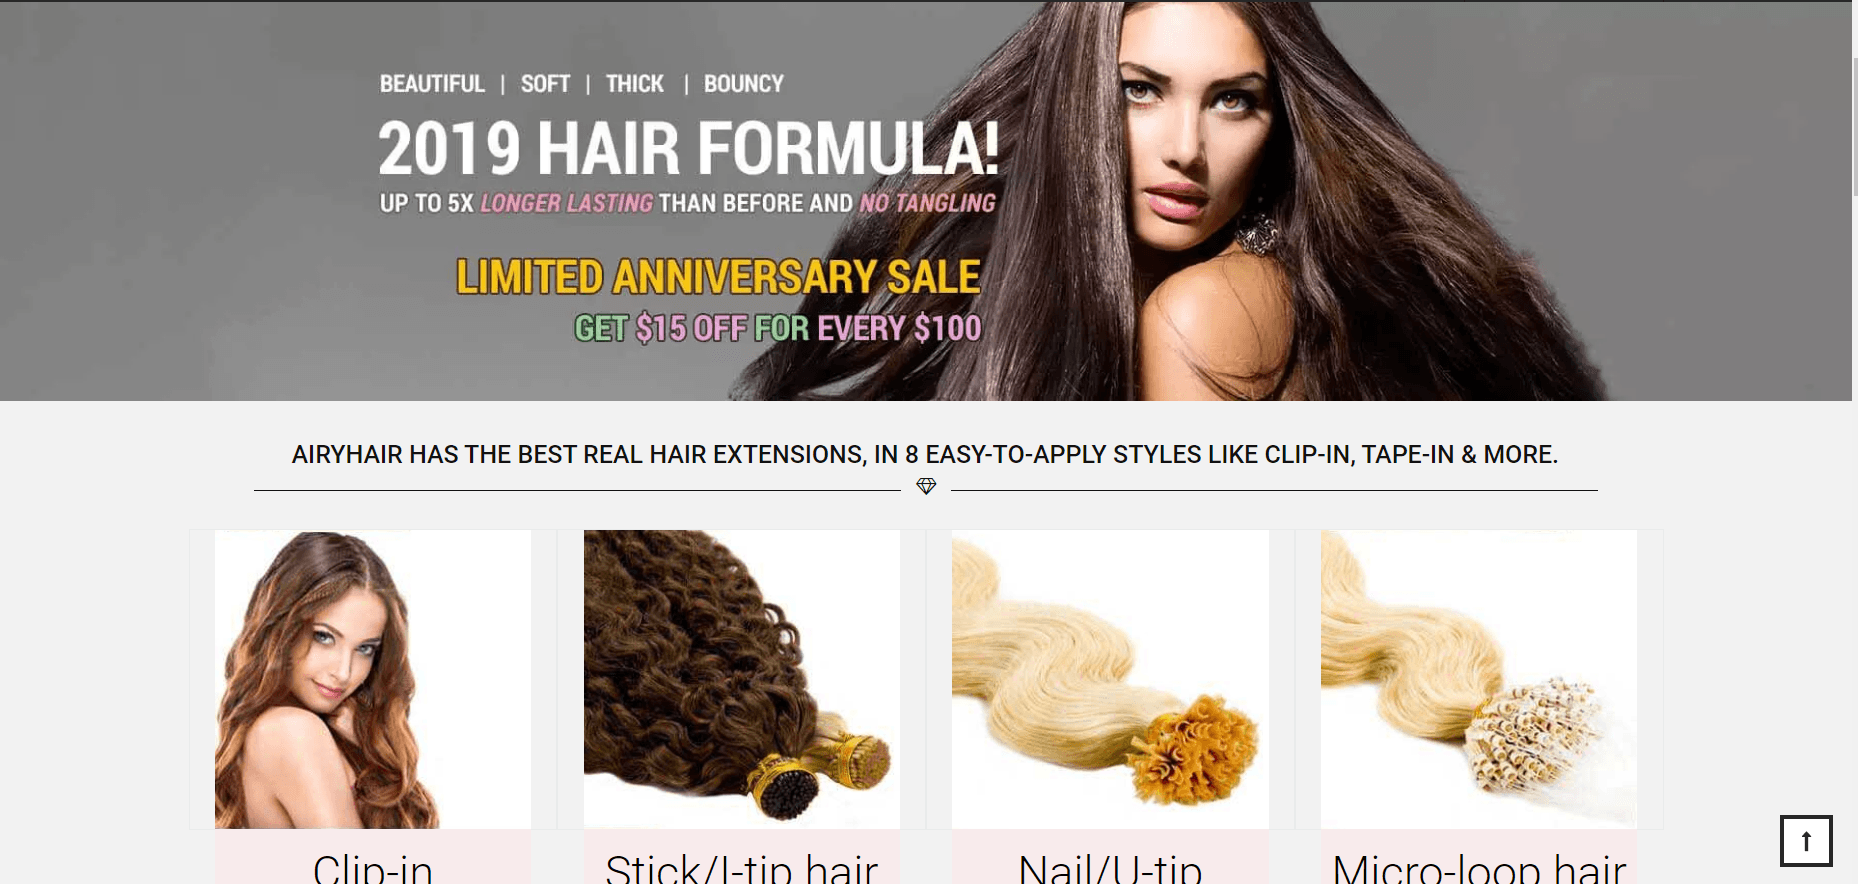 This screenshot shows some hair extension purchase options from AiryHair, a hair extension company with one of the ten best hair extension affiliate programs.